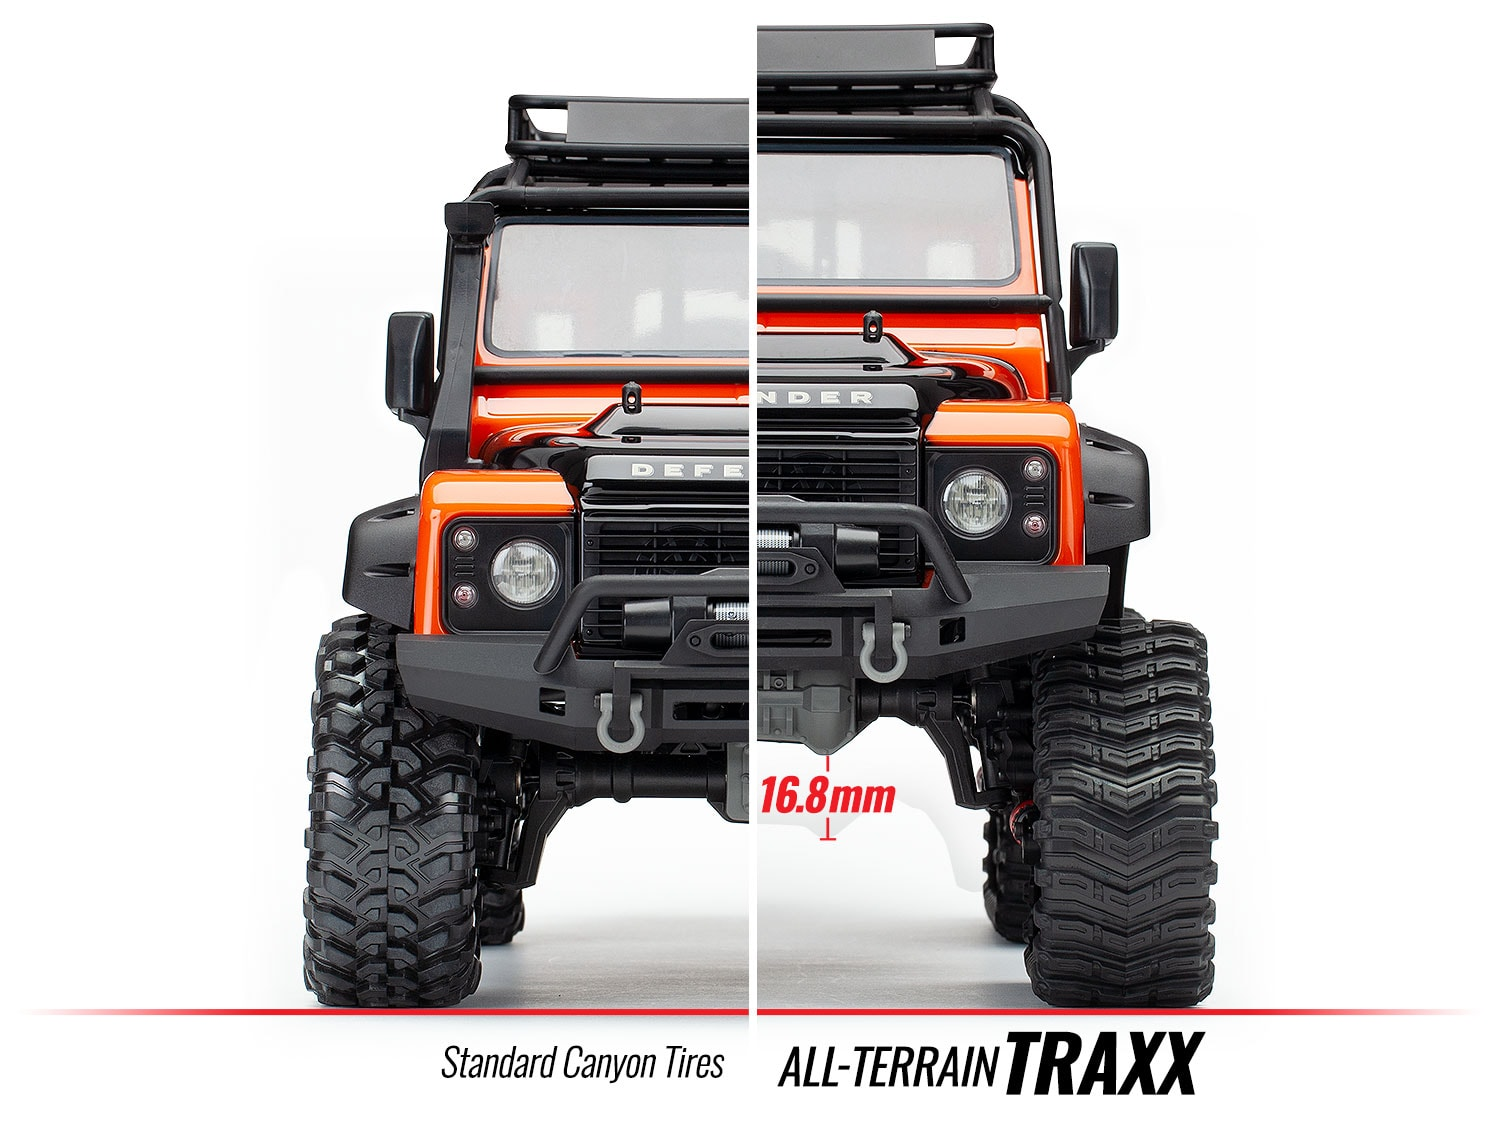 Traxxas All-Terrain Traxx - Comparision